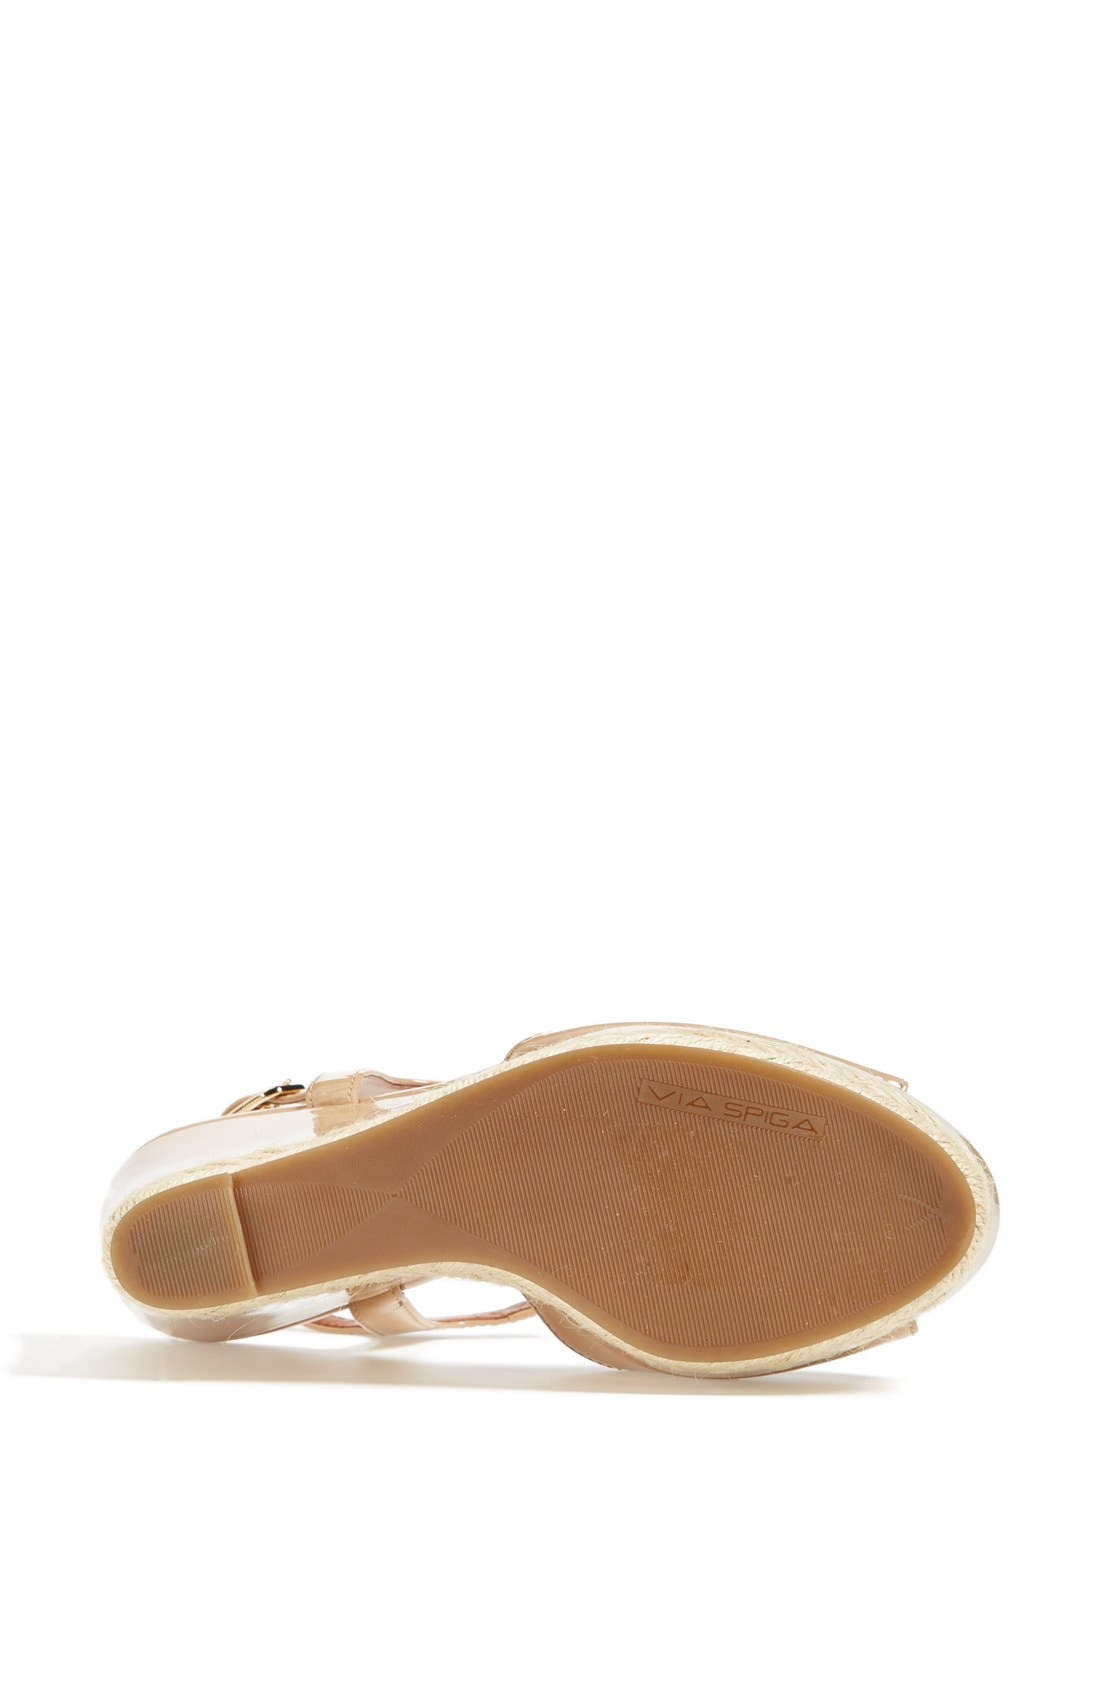 Alternate Image 3  - Via Spiga 'Melia' Wedge Sandal